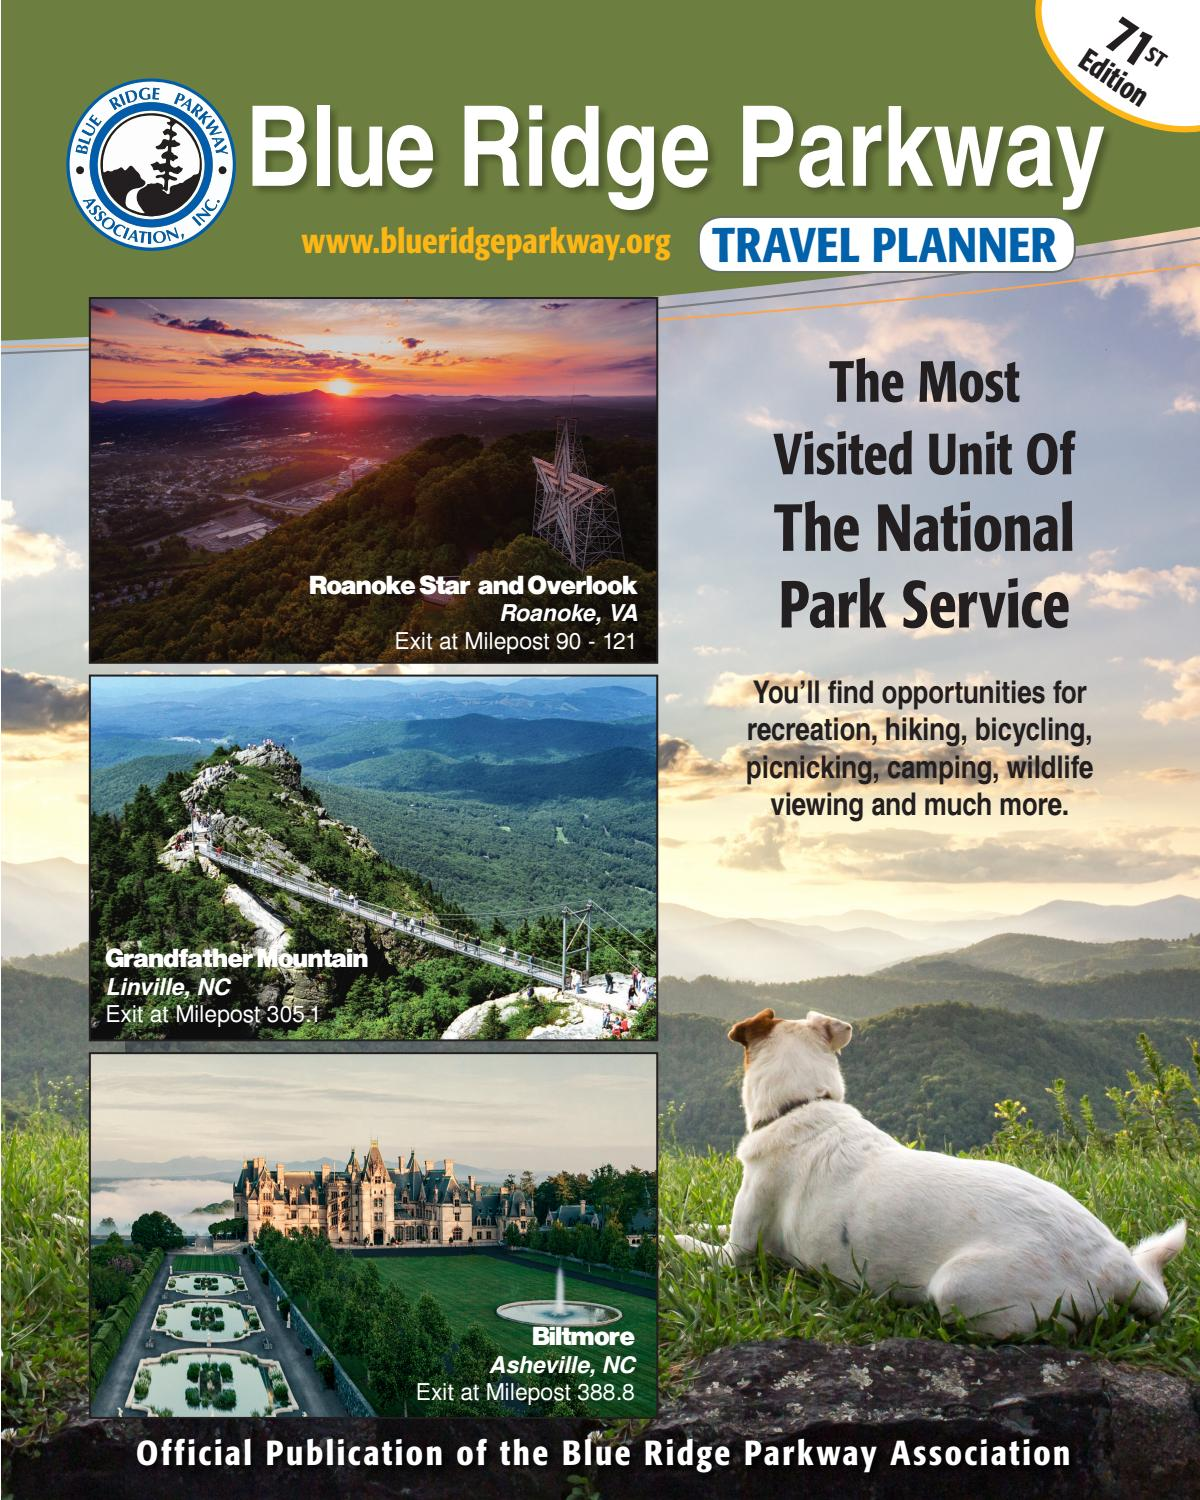 Insiders Guide to North Carolinas Mountains 8th: Including Asheville and the Blue Ridge Parkway Biltmore Estate